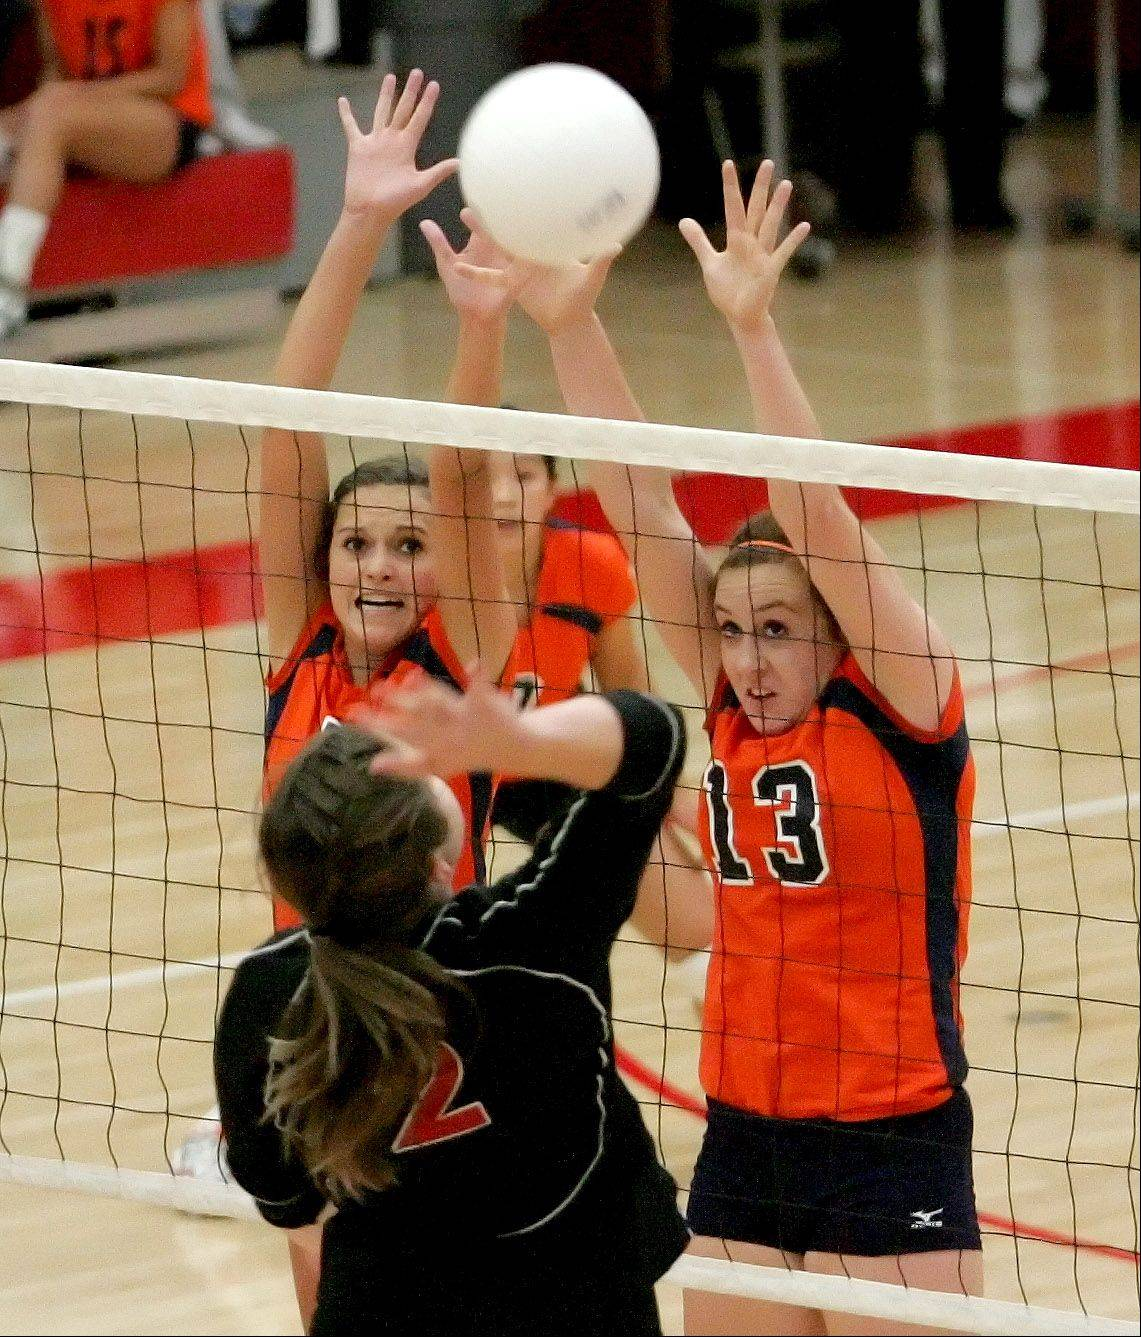 Bailey O'Drobinak, left and Corinne Gajcak, right, of Naperville North reach to block a shot in action against Naperville Central on Tuesday.